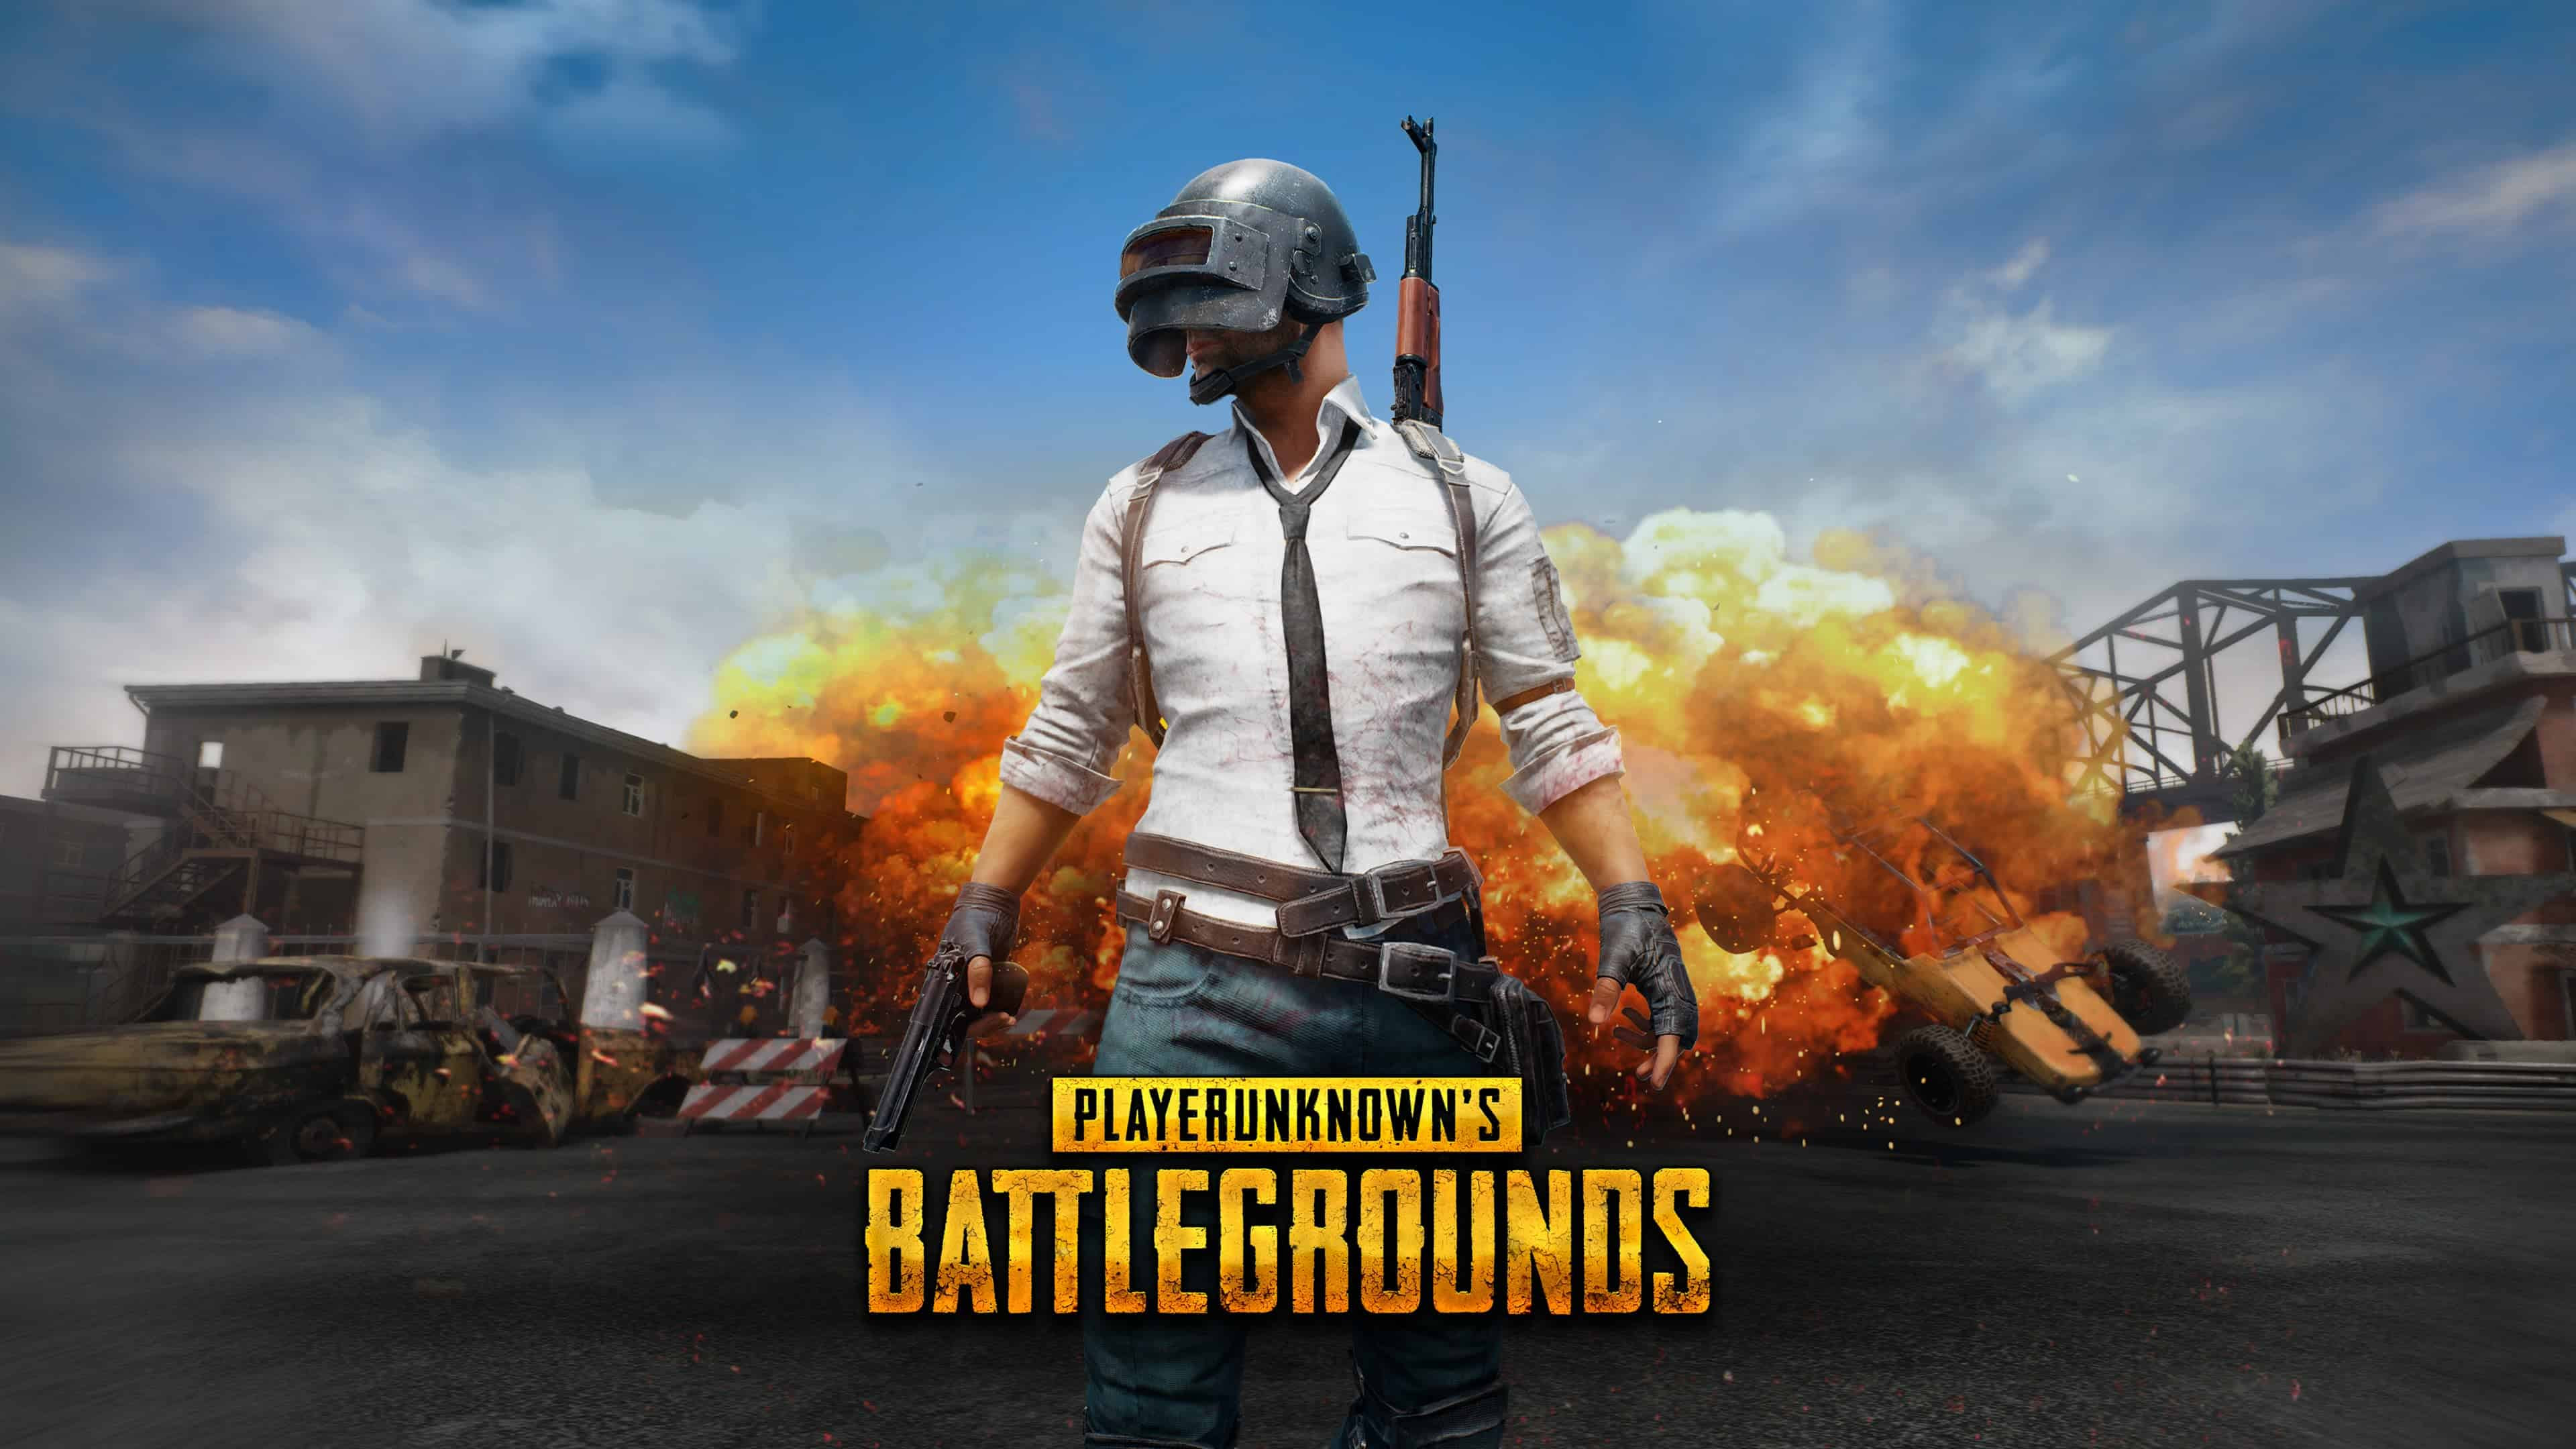 PUBG Player Unknown Battlegrounds Cover UHD 4K Wallpaper Pixelz